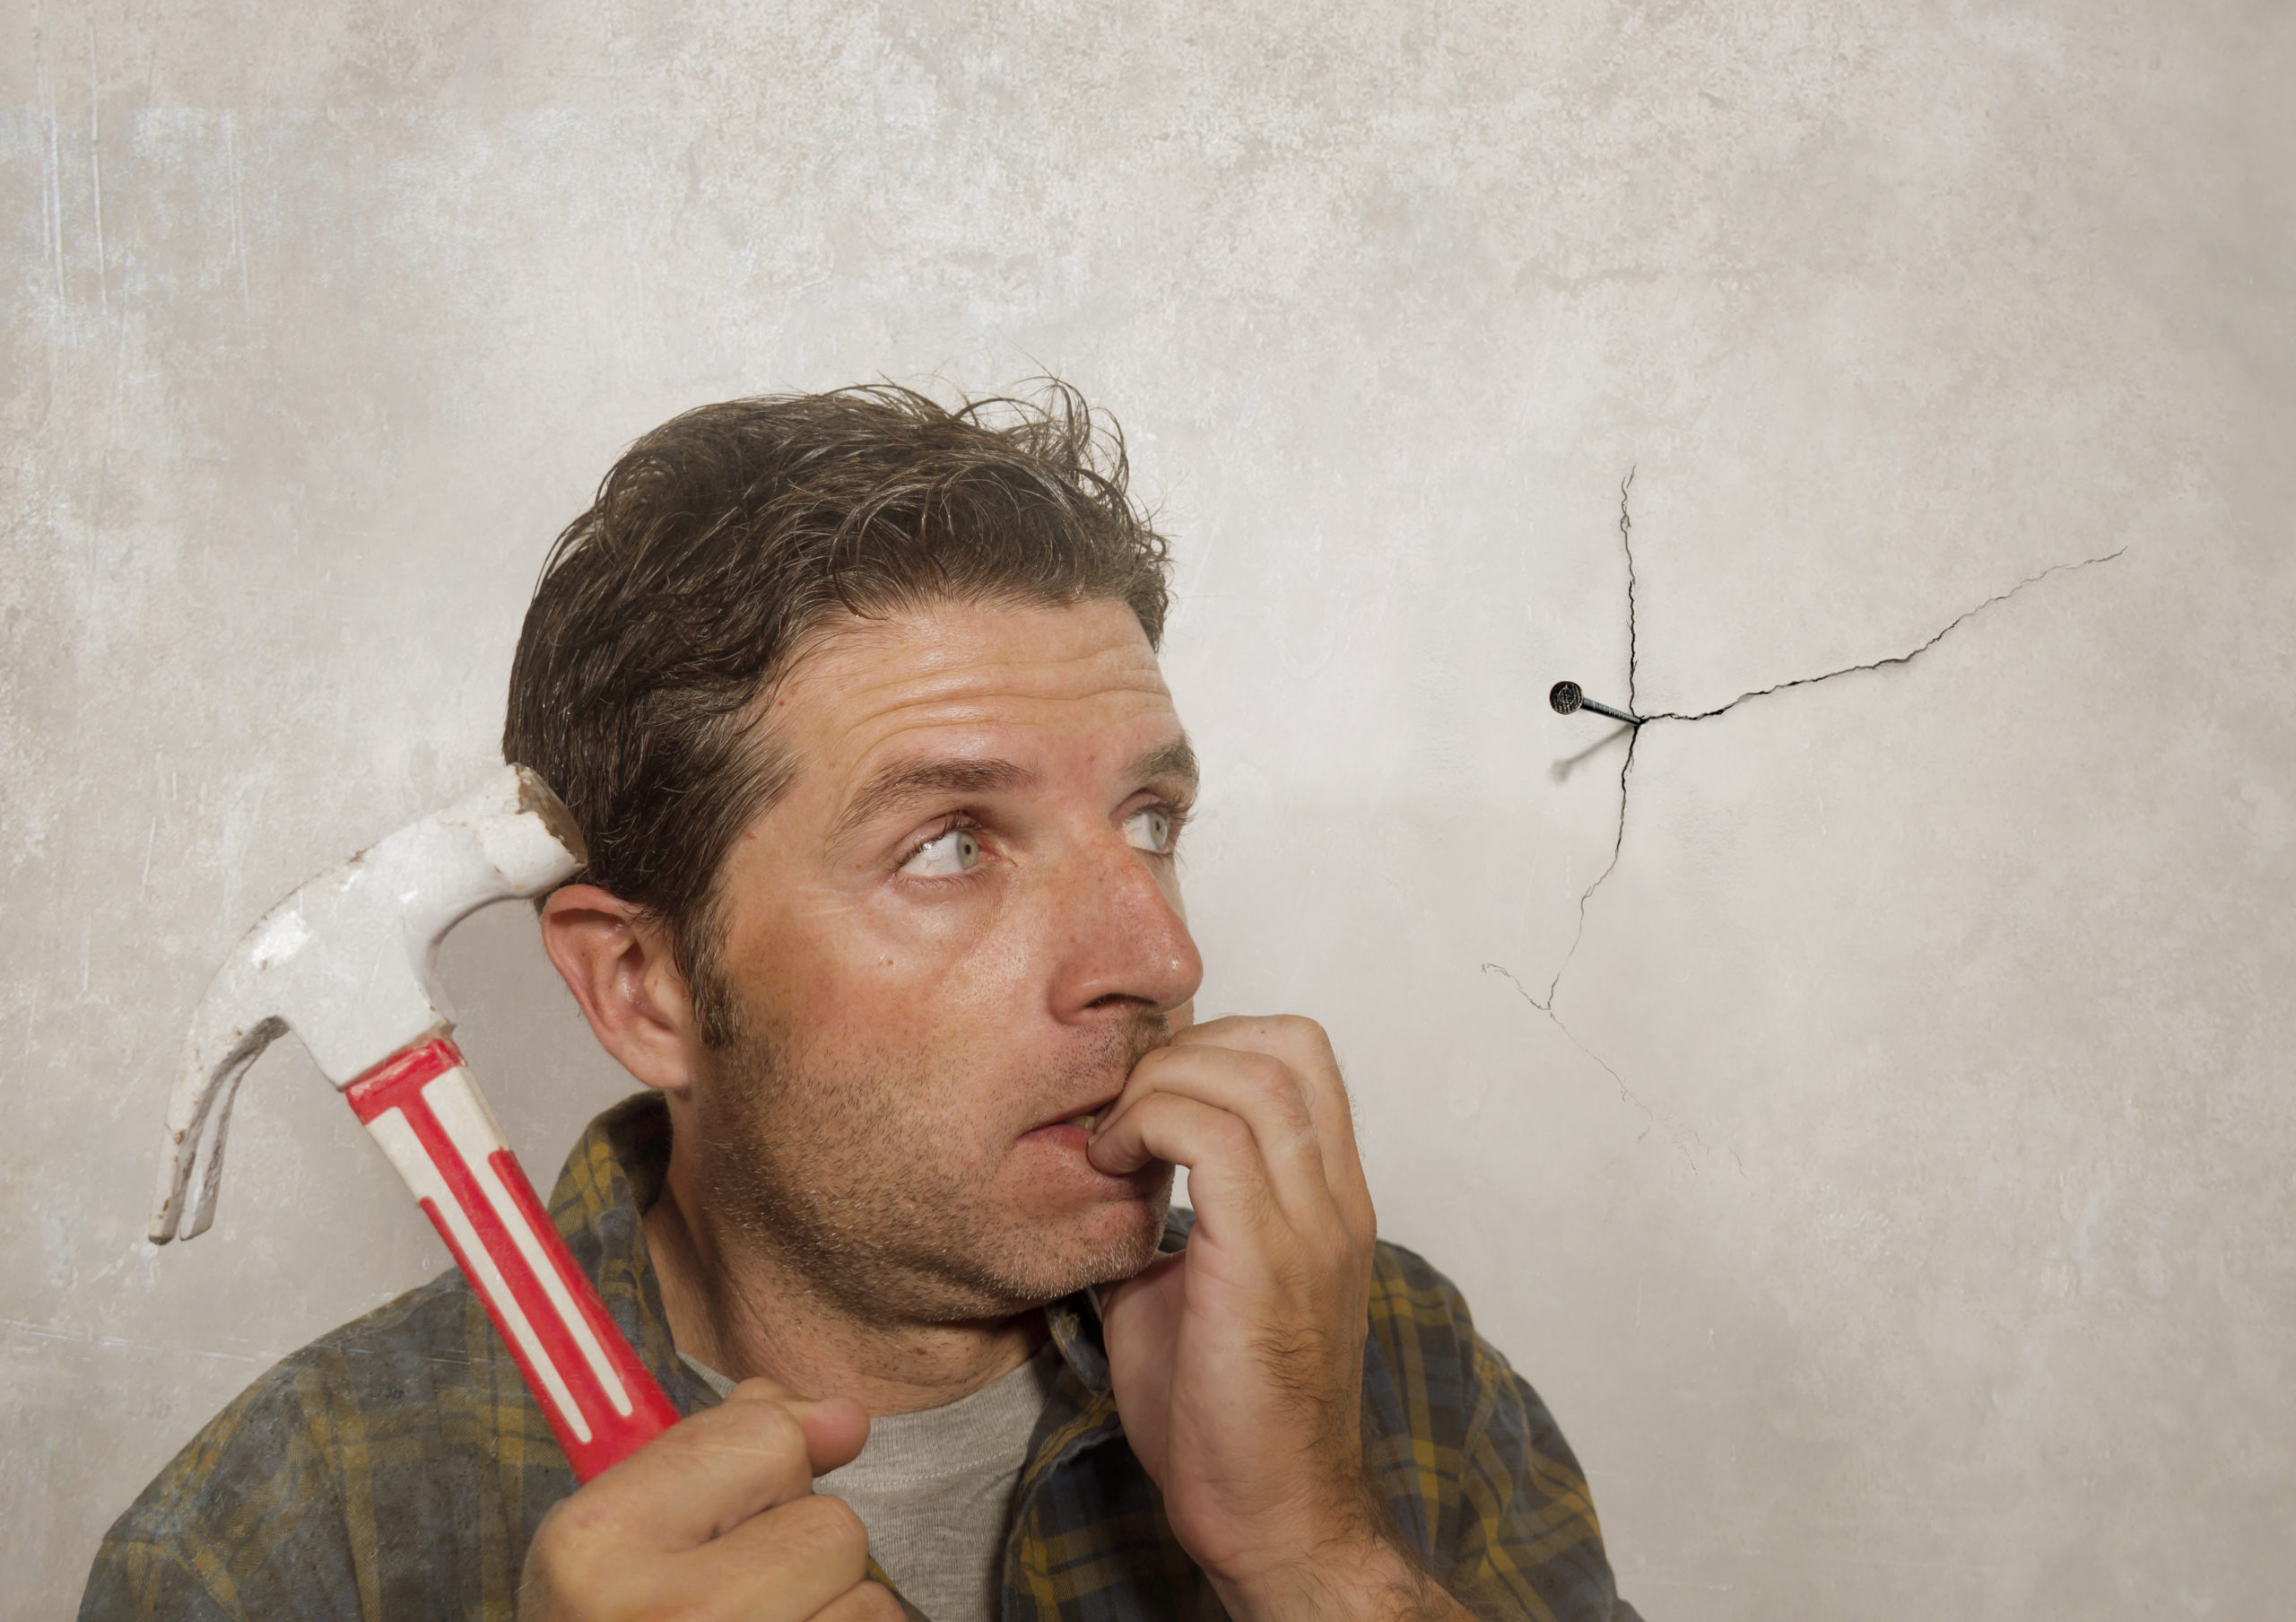 The common DIY mistakes costing Brits up to £35,000 to repair